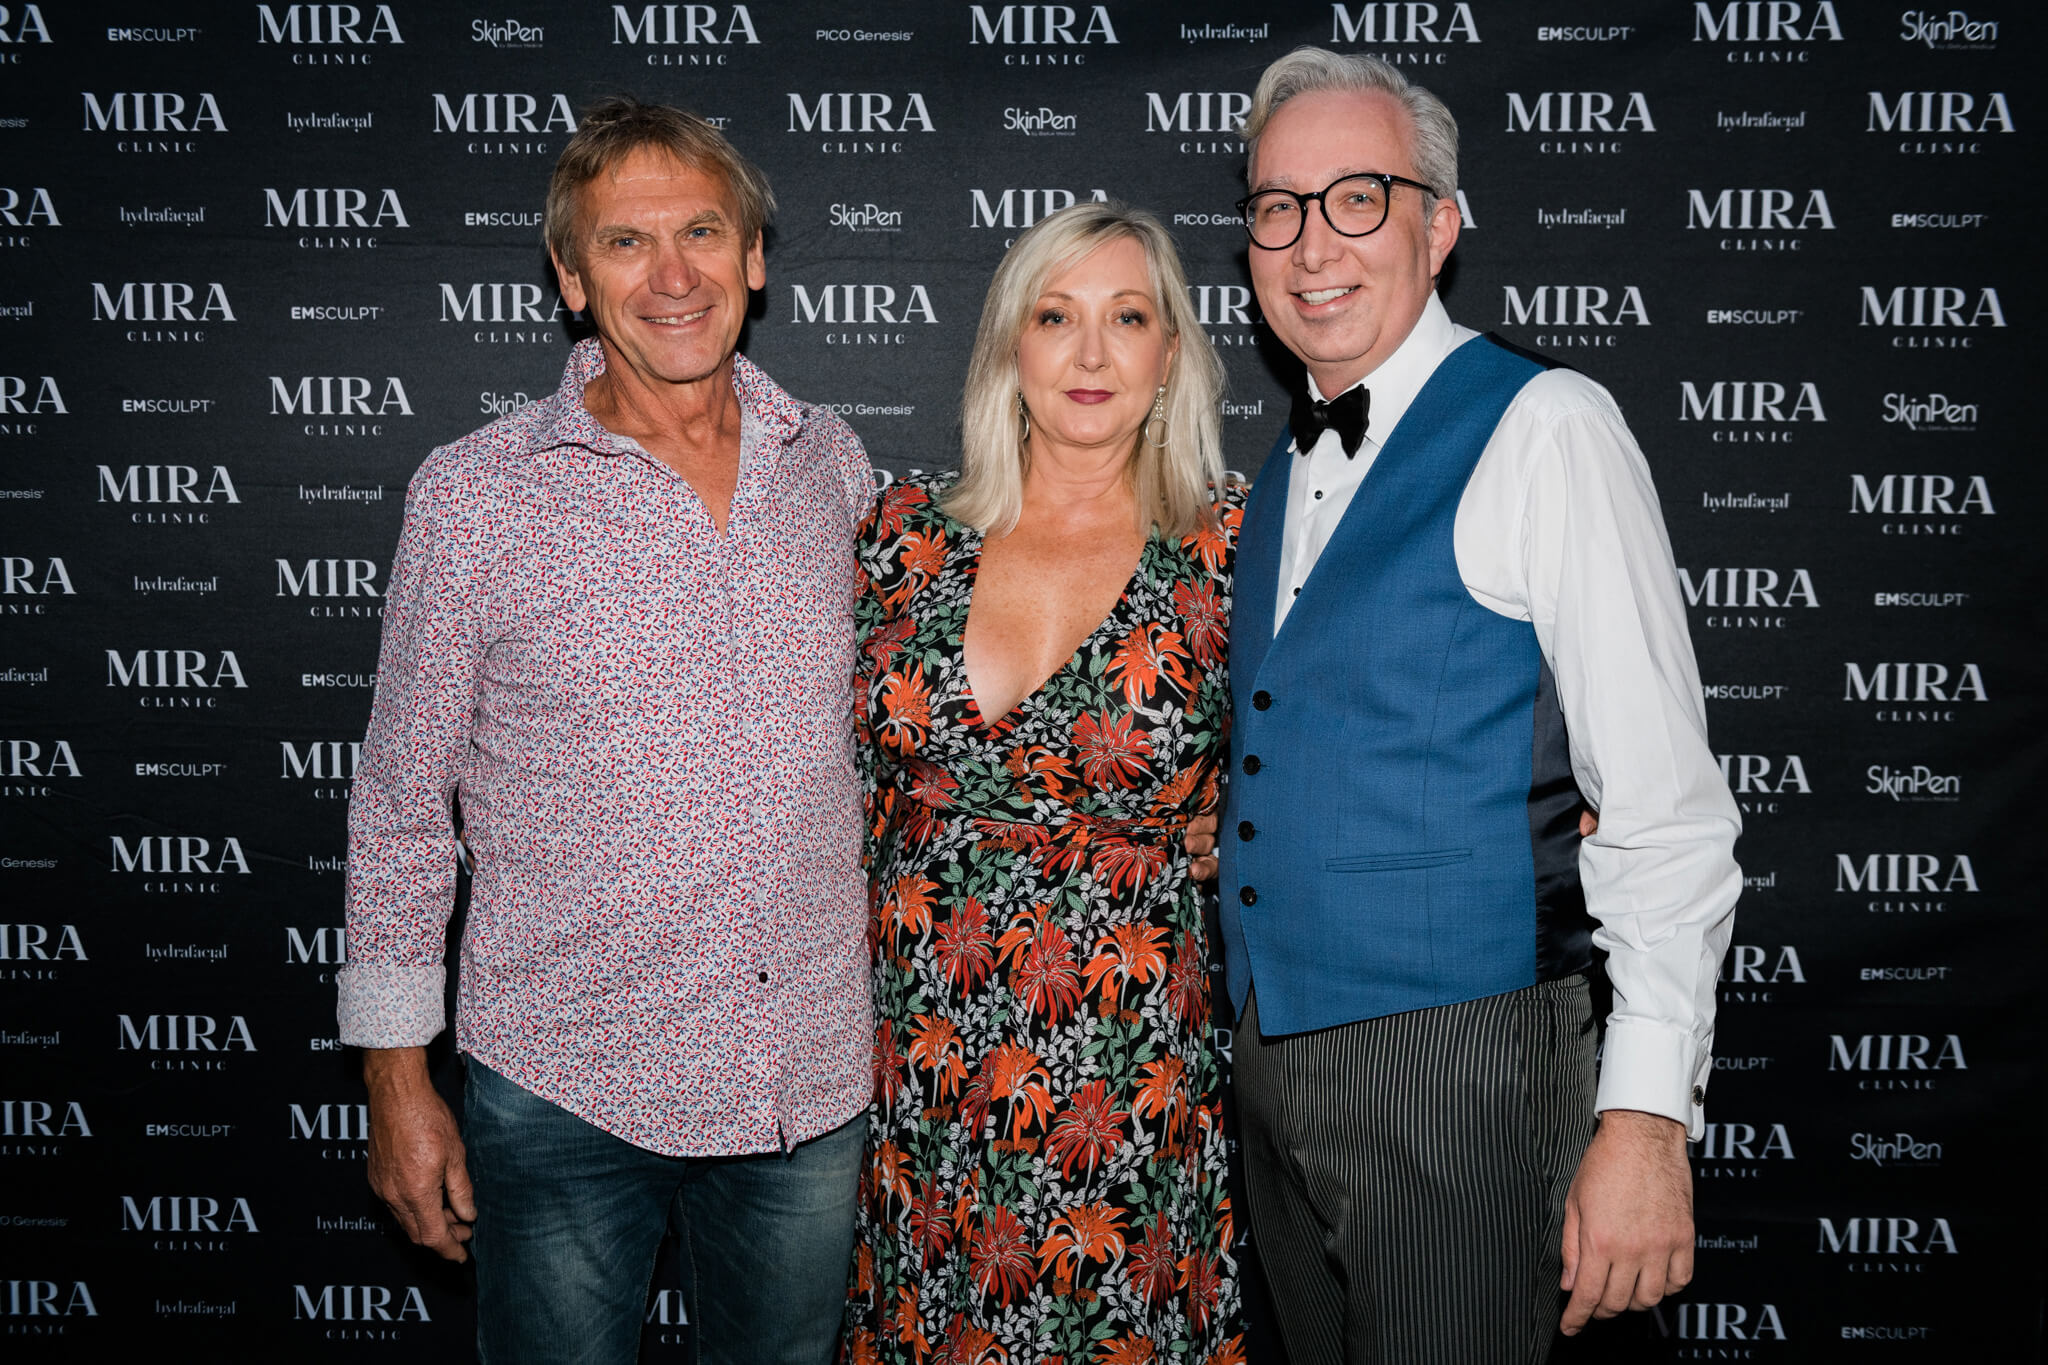 Joondalup Cosmetic Clinic launch party - MIRA Clinic